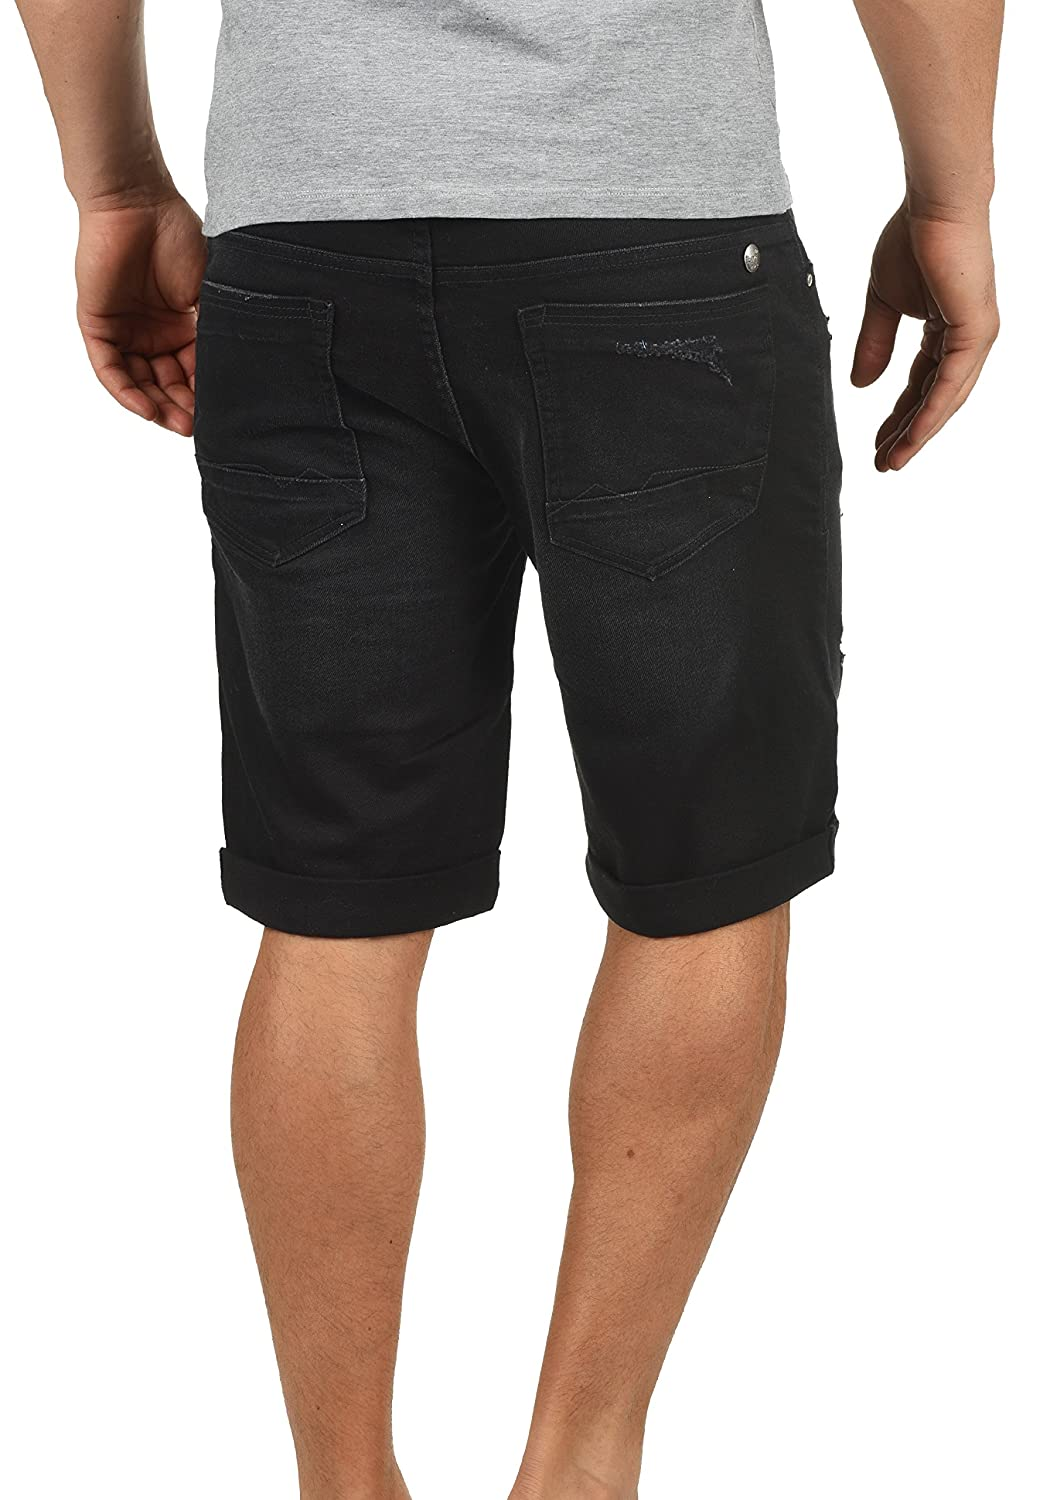 Blend Deniz Herren Jeans Shorts Kurze Denim Hose Mit Destroyed-Optik Aus  Stretch-Material Regular Fit  Amazon.de  Bekleidung 05ddc3af96